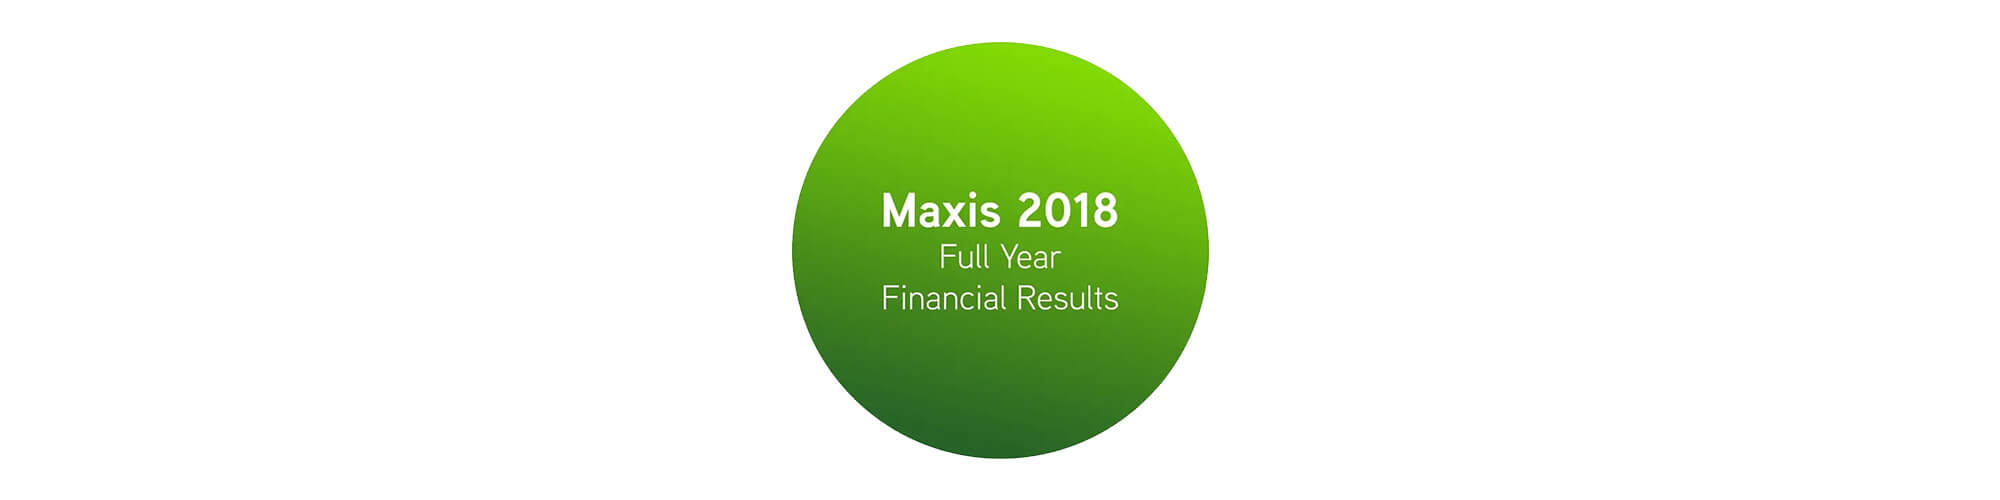 Gearing Up For Future Growth, Maxis Announces New Strategy